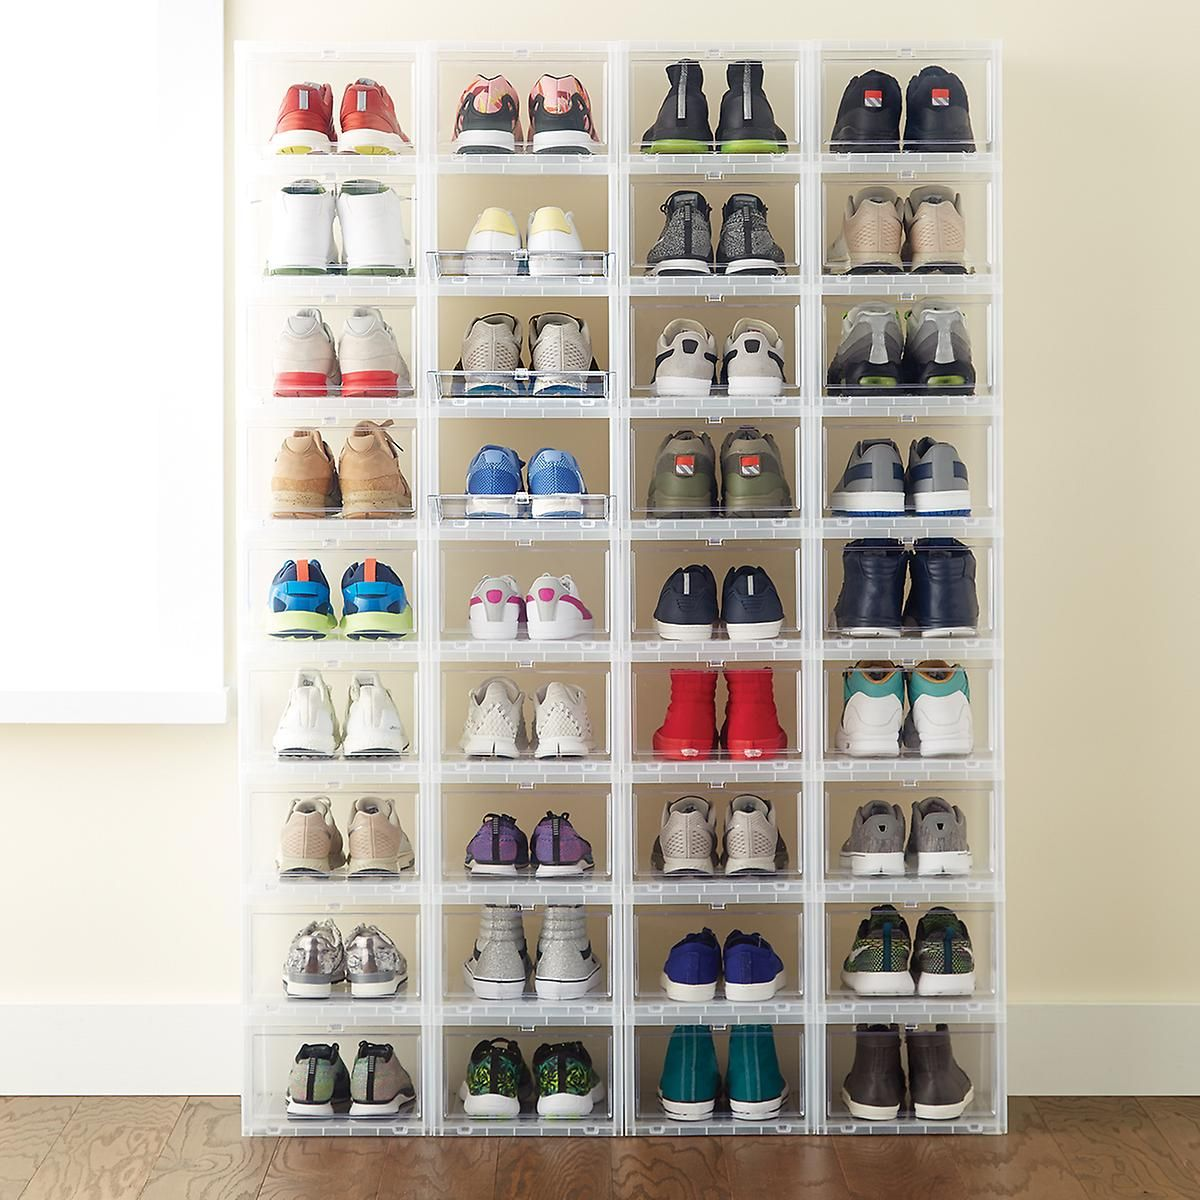 8 shoe open drawers httpswwwcontainerstorecomsclosetshoe storage bins boxesmens drop front shoe box123dproductid11006294 - Container Store Shoe Storage